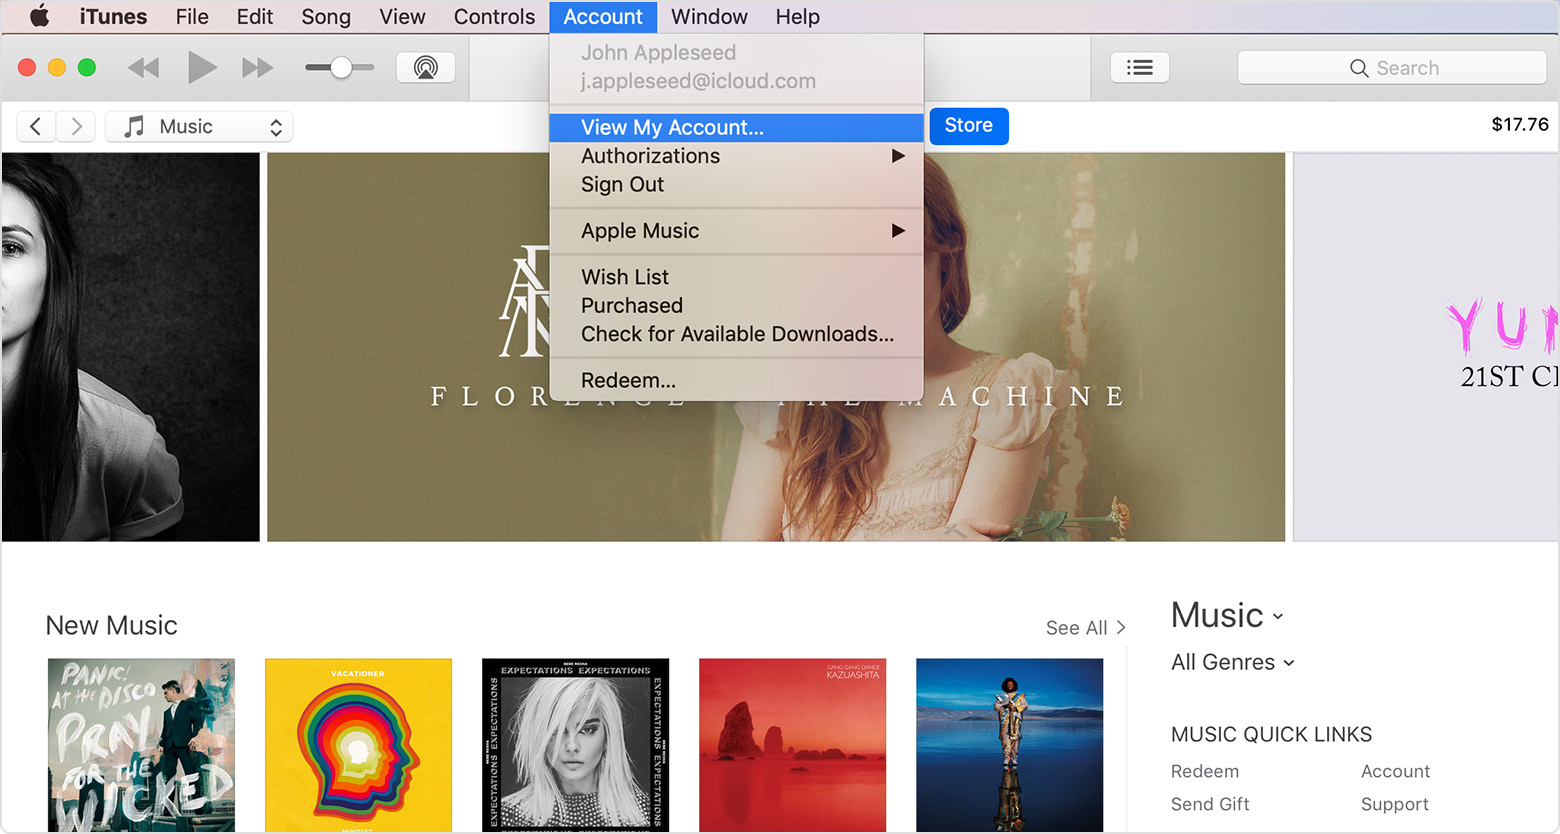 The Account menu in iTunes, with View My Account selected.